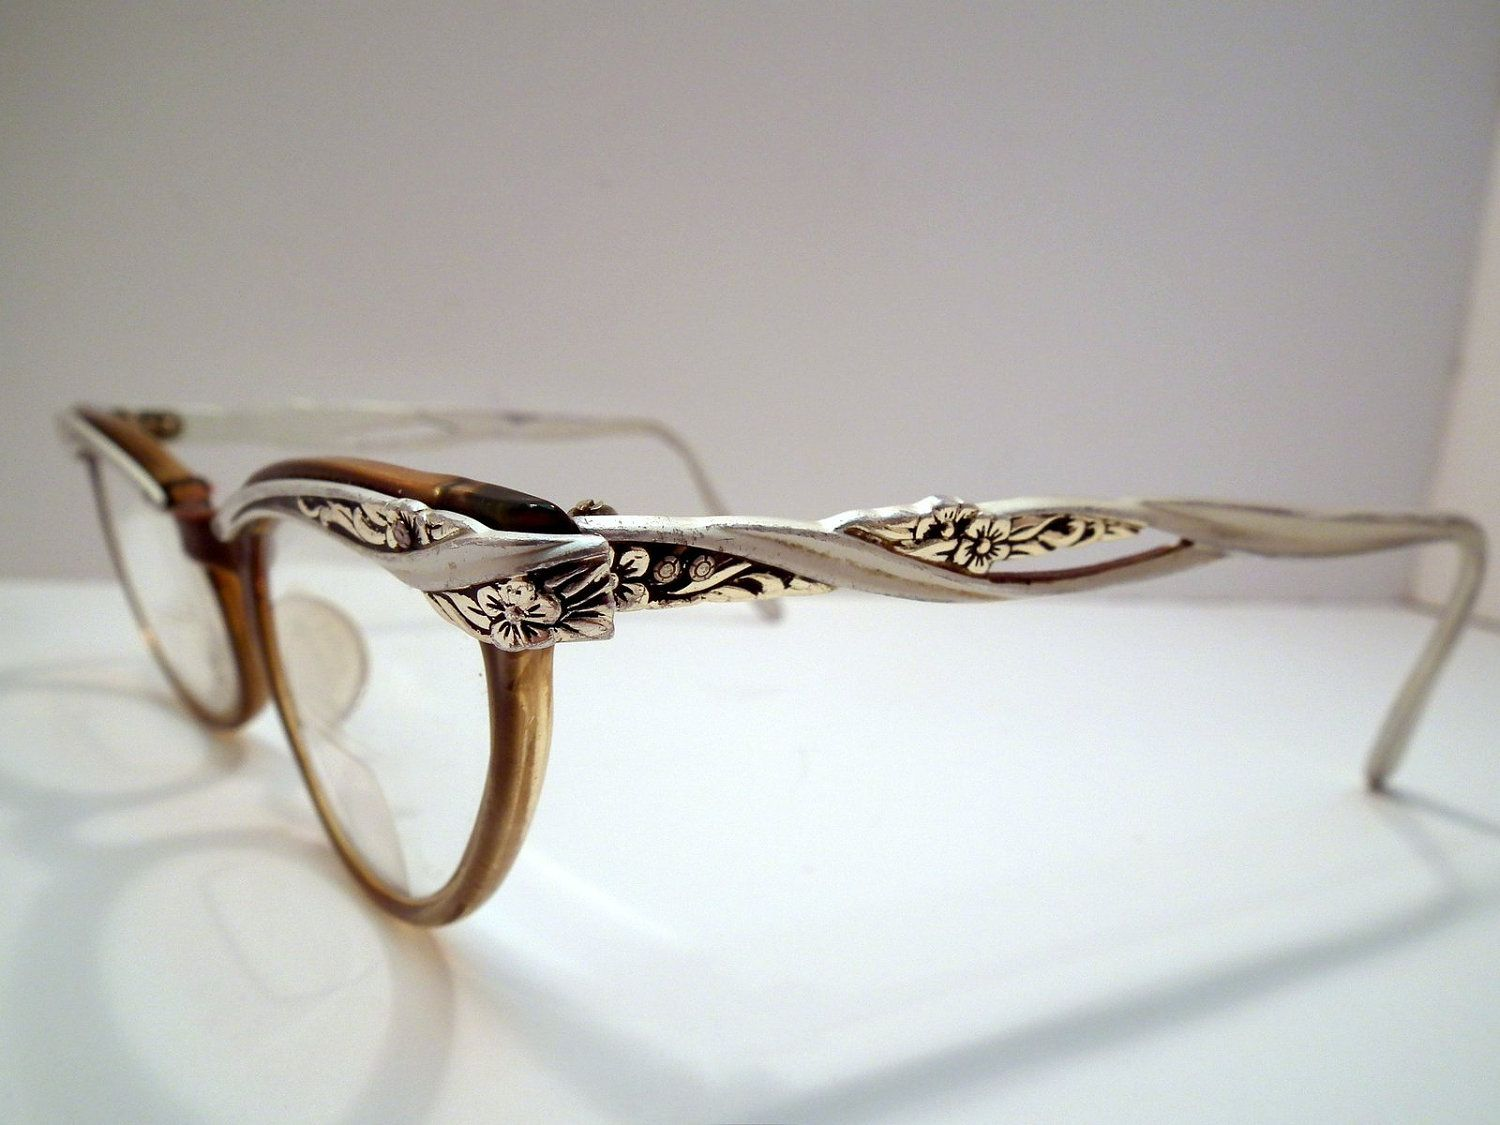 f0c9b4cfe7f5 Loves these frames im looking for new ones. its hard finding new ones that  are better then the ones I have now